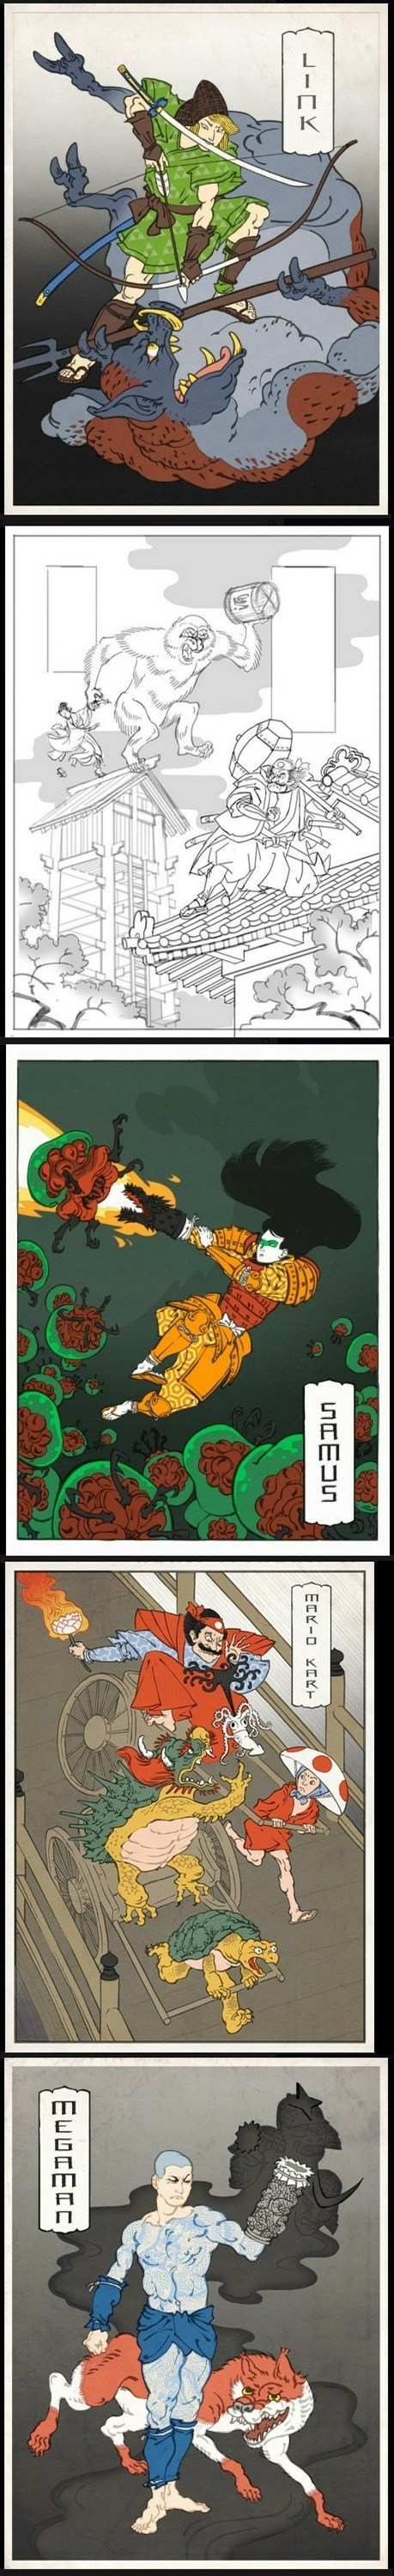 donkey kong Fan Art link mario Mario Kart megaman Metroid samus ukiyo-e video games - 6377360640